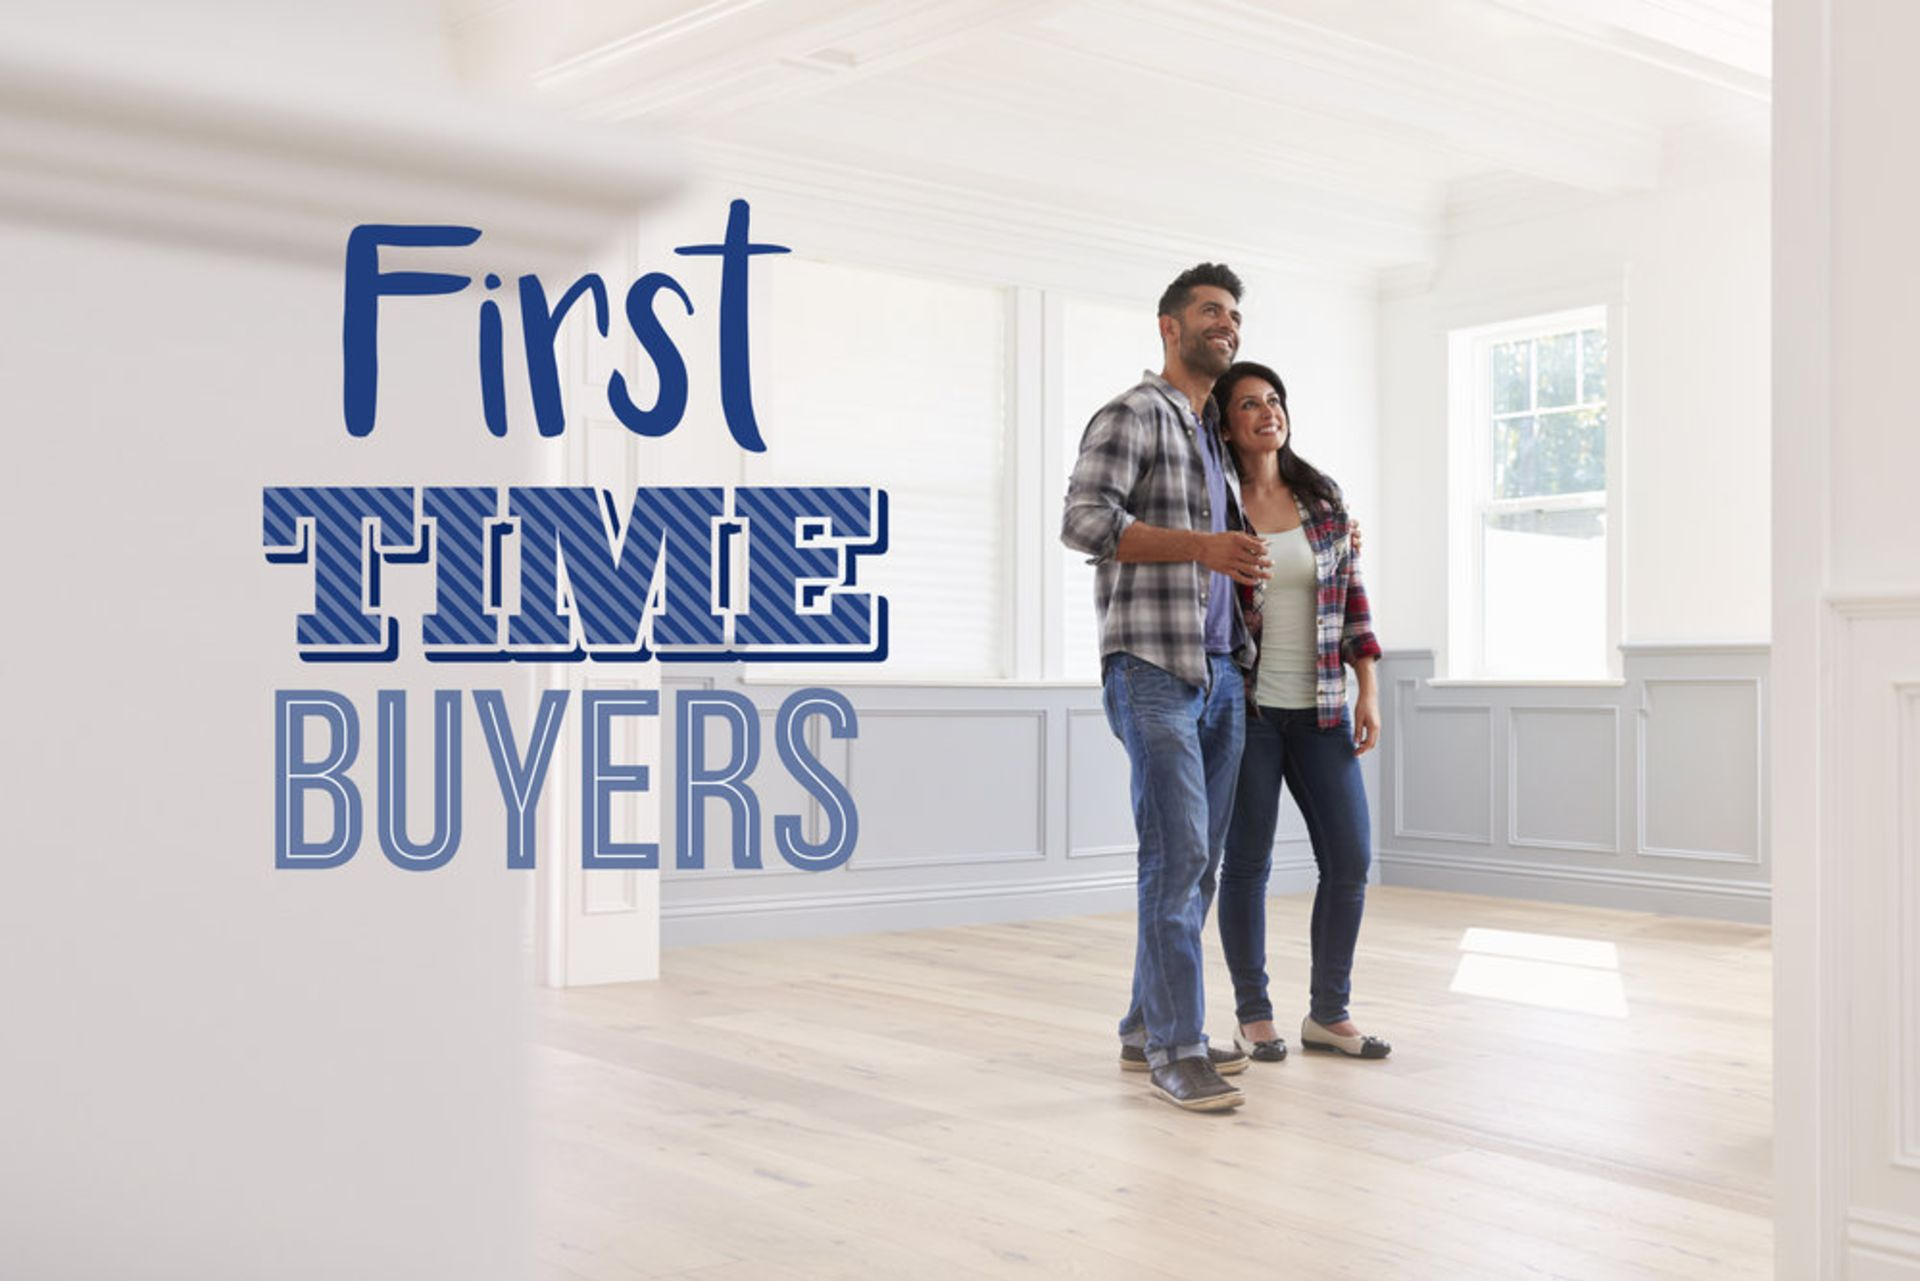 3 Question to ask as a First Time Homebuyer